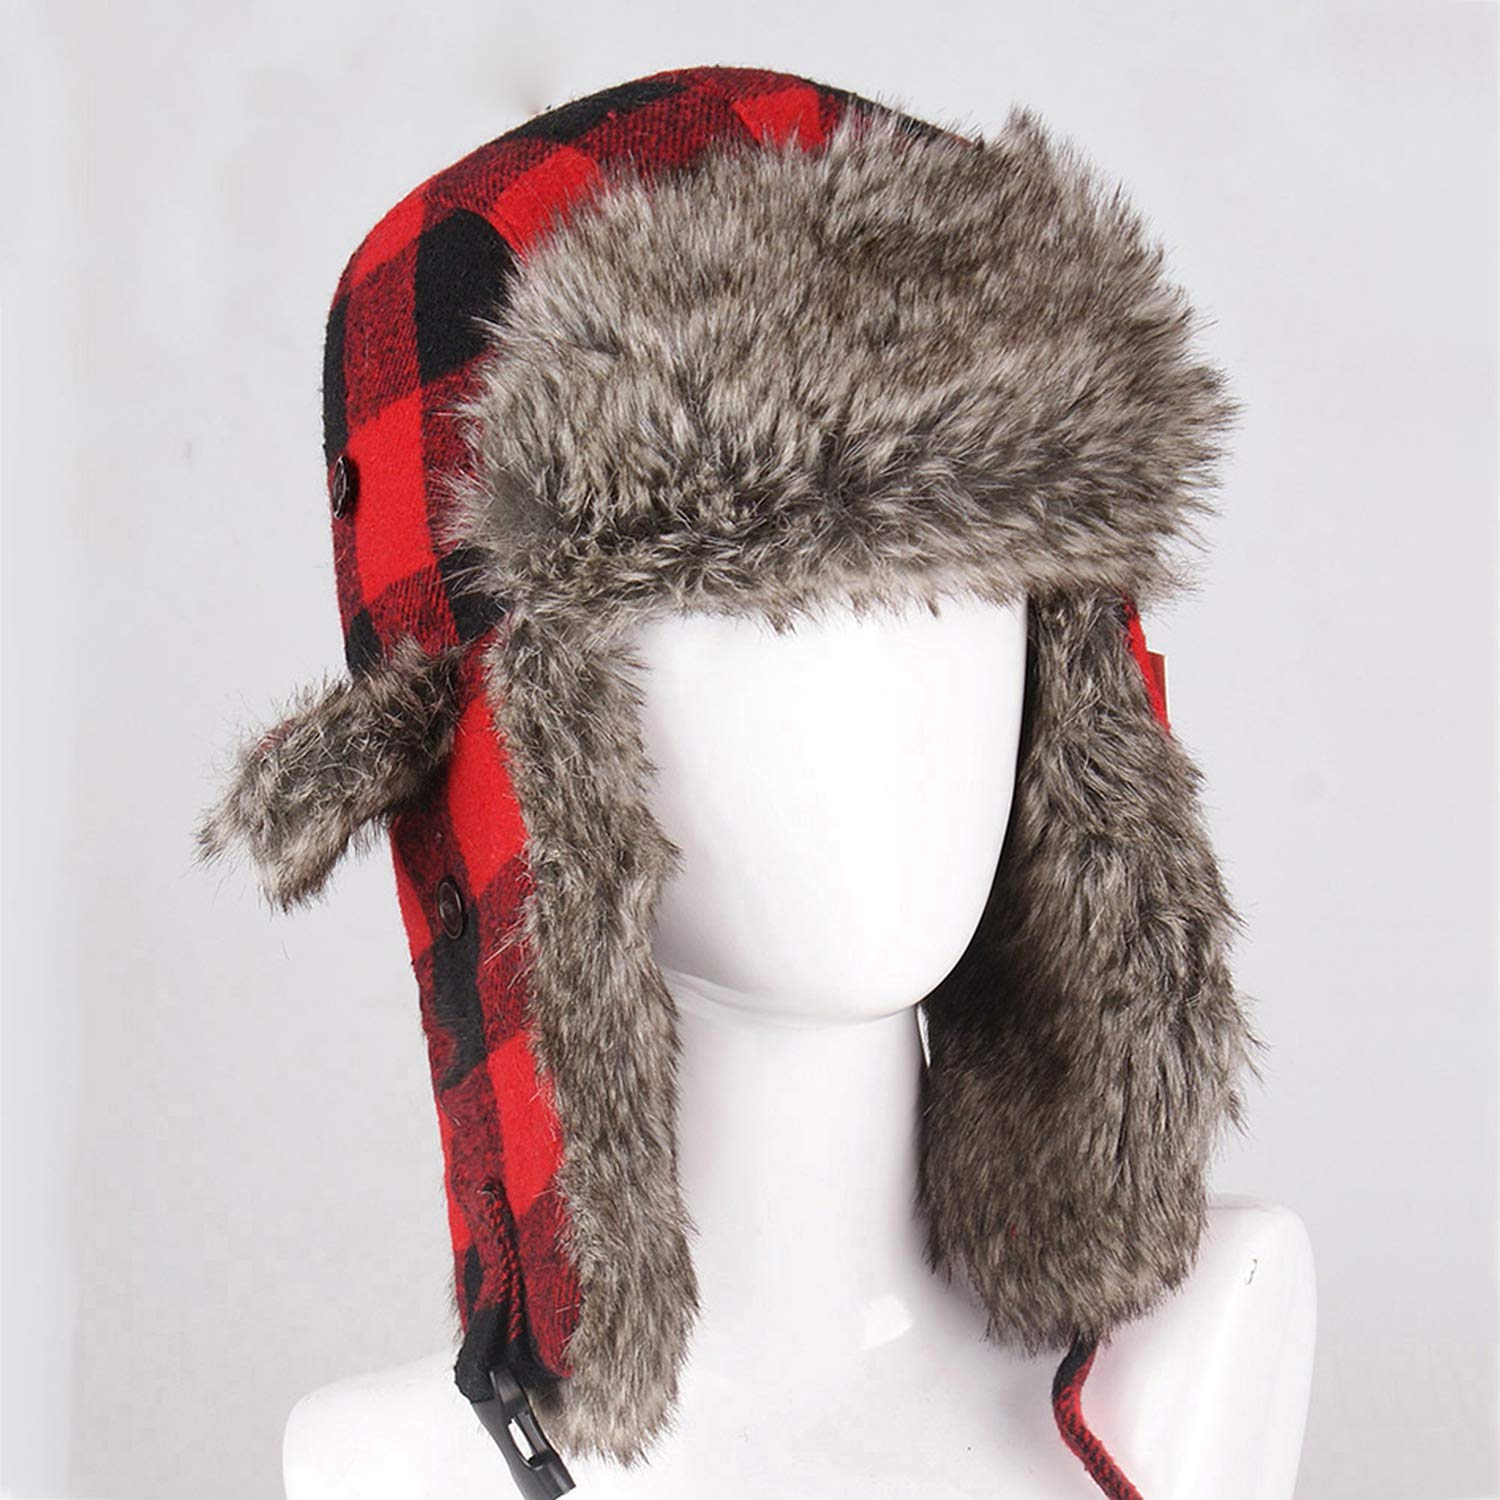 Winter Hats Bomber Hat Fur Red Warm Earflap Cap Windproof Women Thicker Plaid Russian Ushanka Hat Black Blue